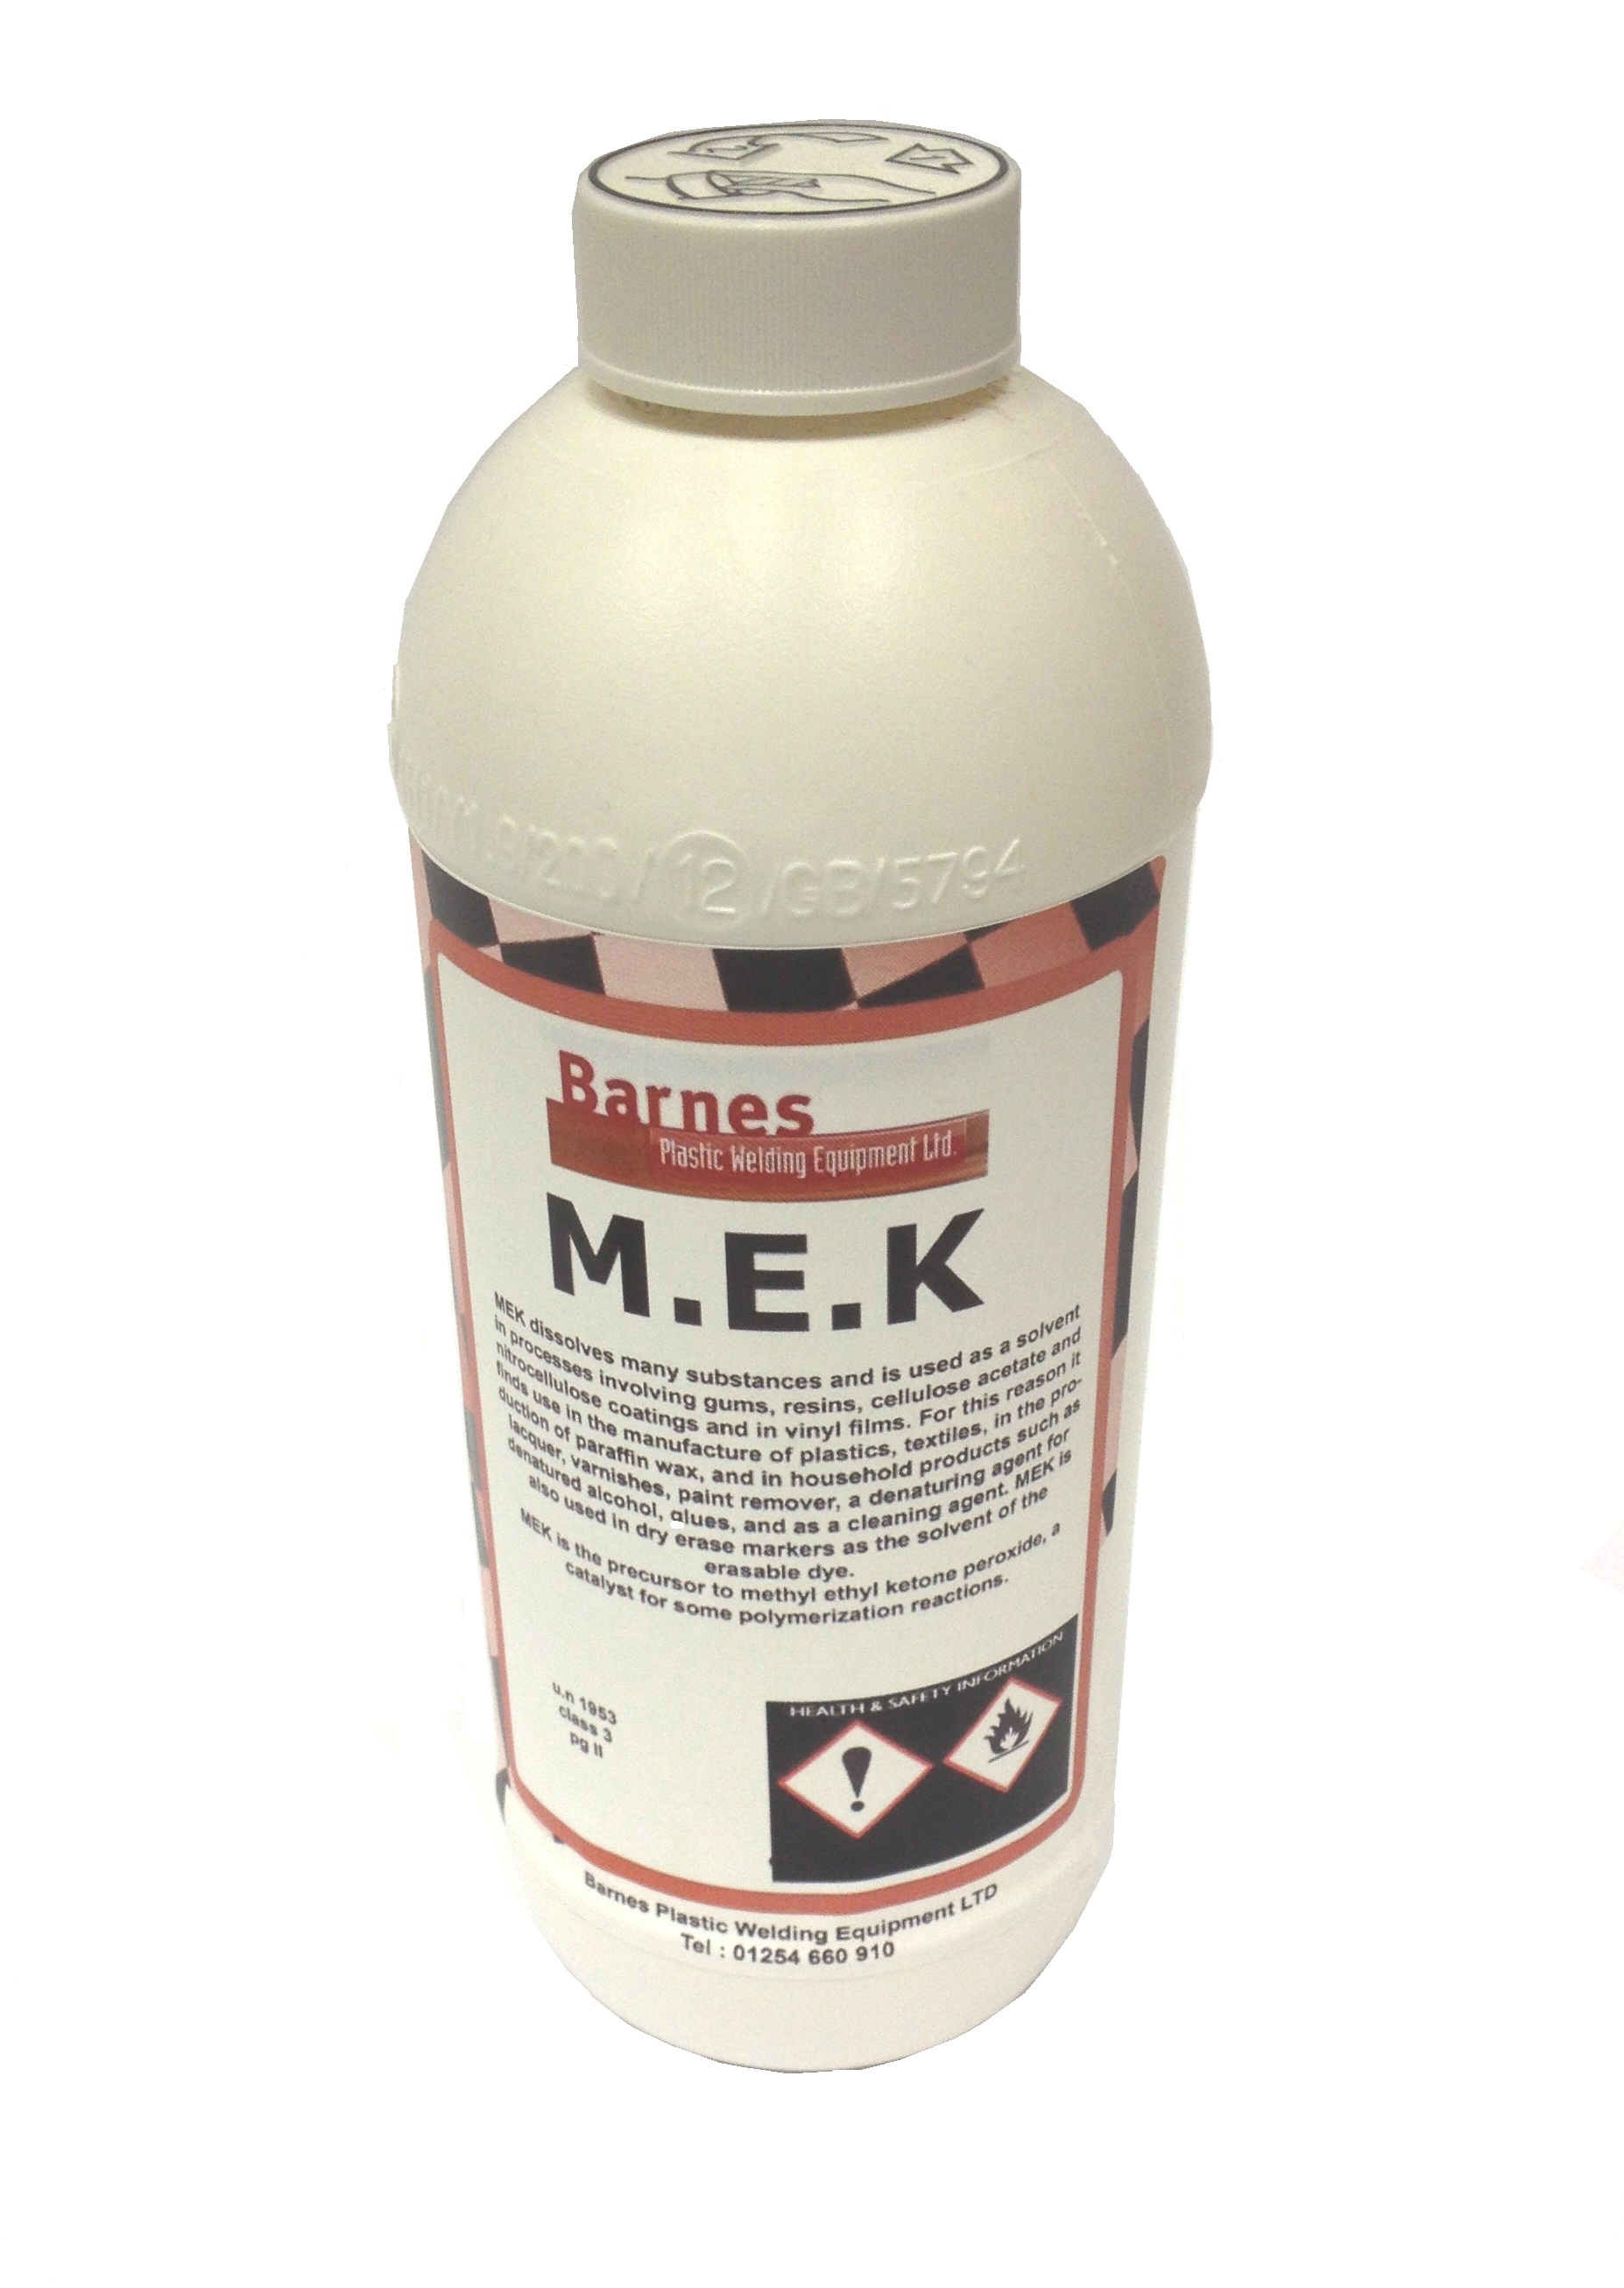 MEK PLASTIC DEGREASING & CLEANING FLUID